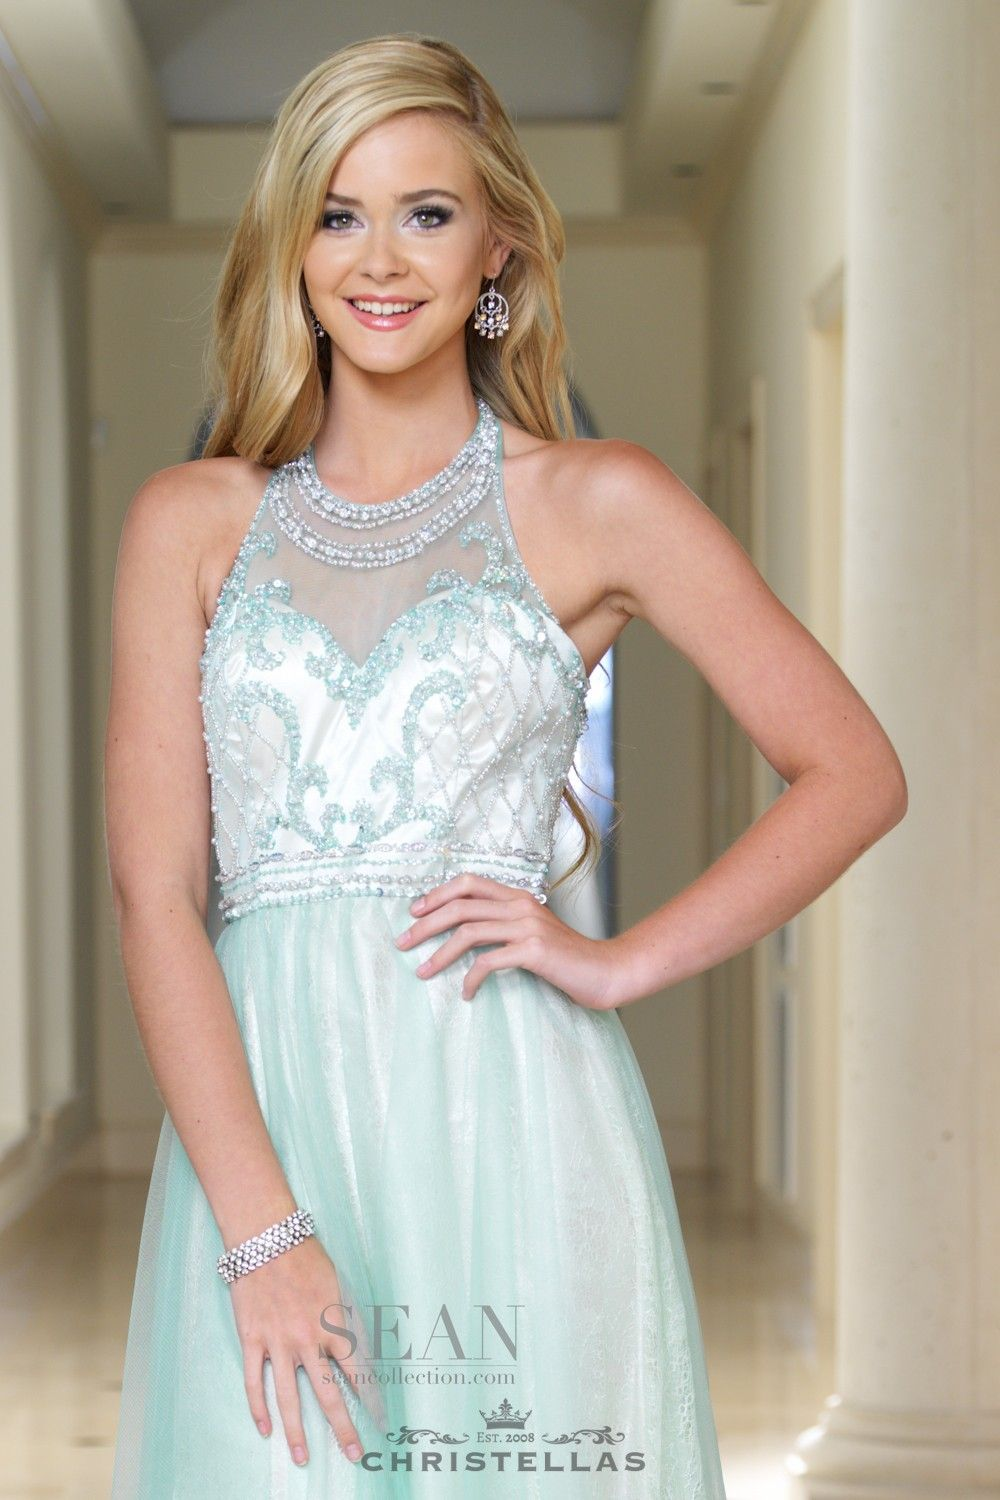 Look majestic in mint with this glittering illusion halter dress